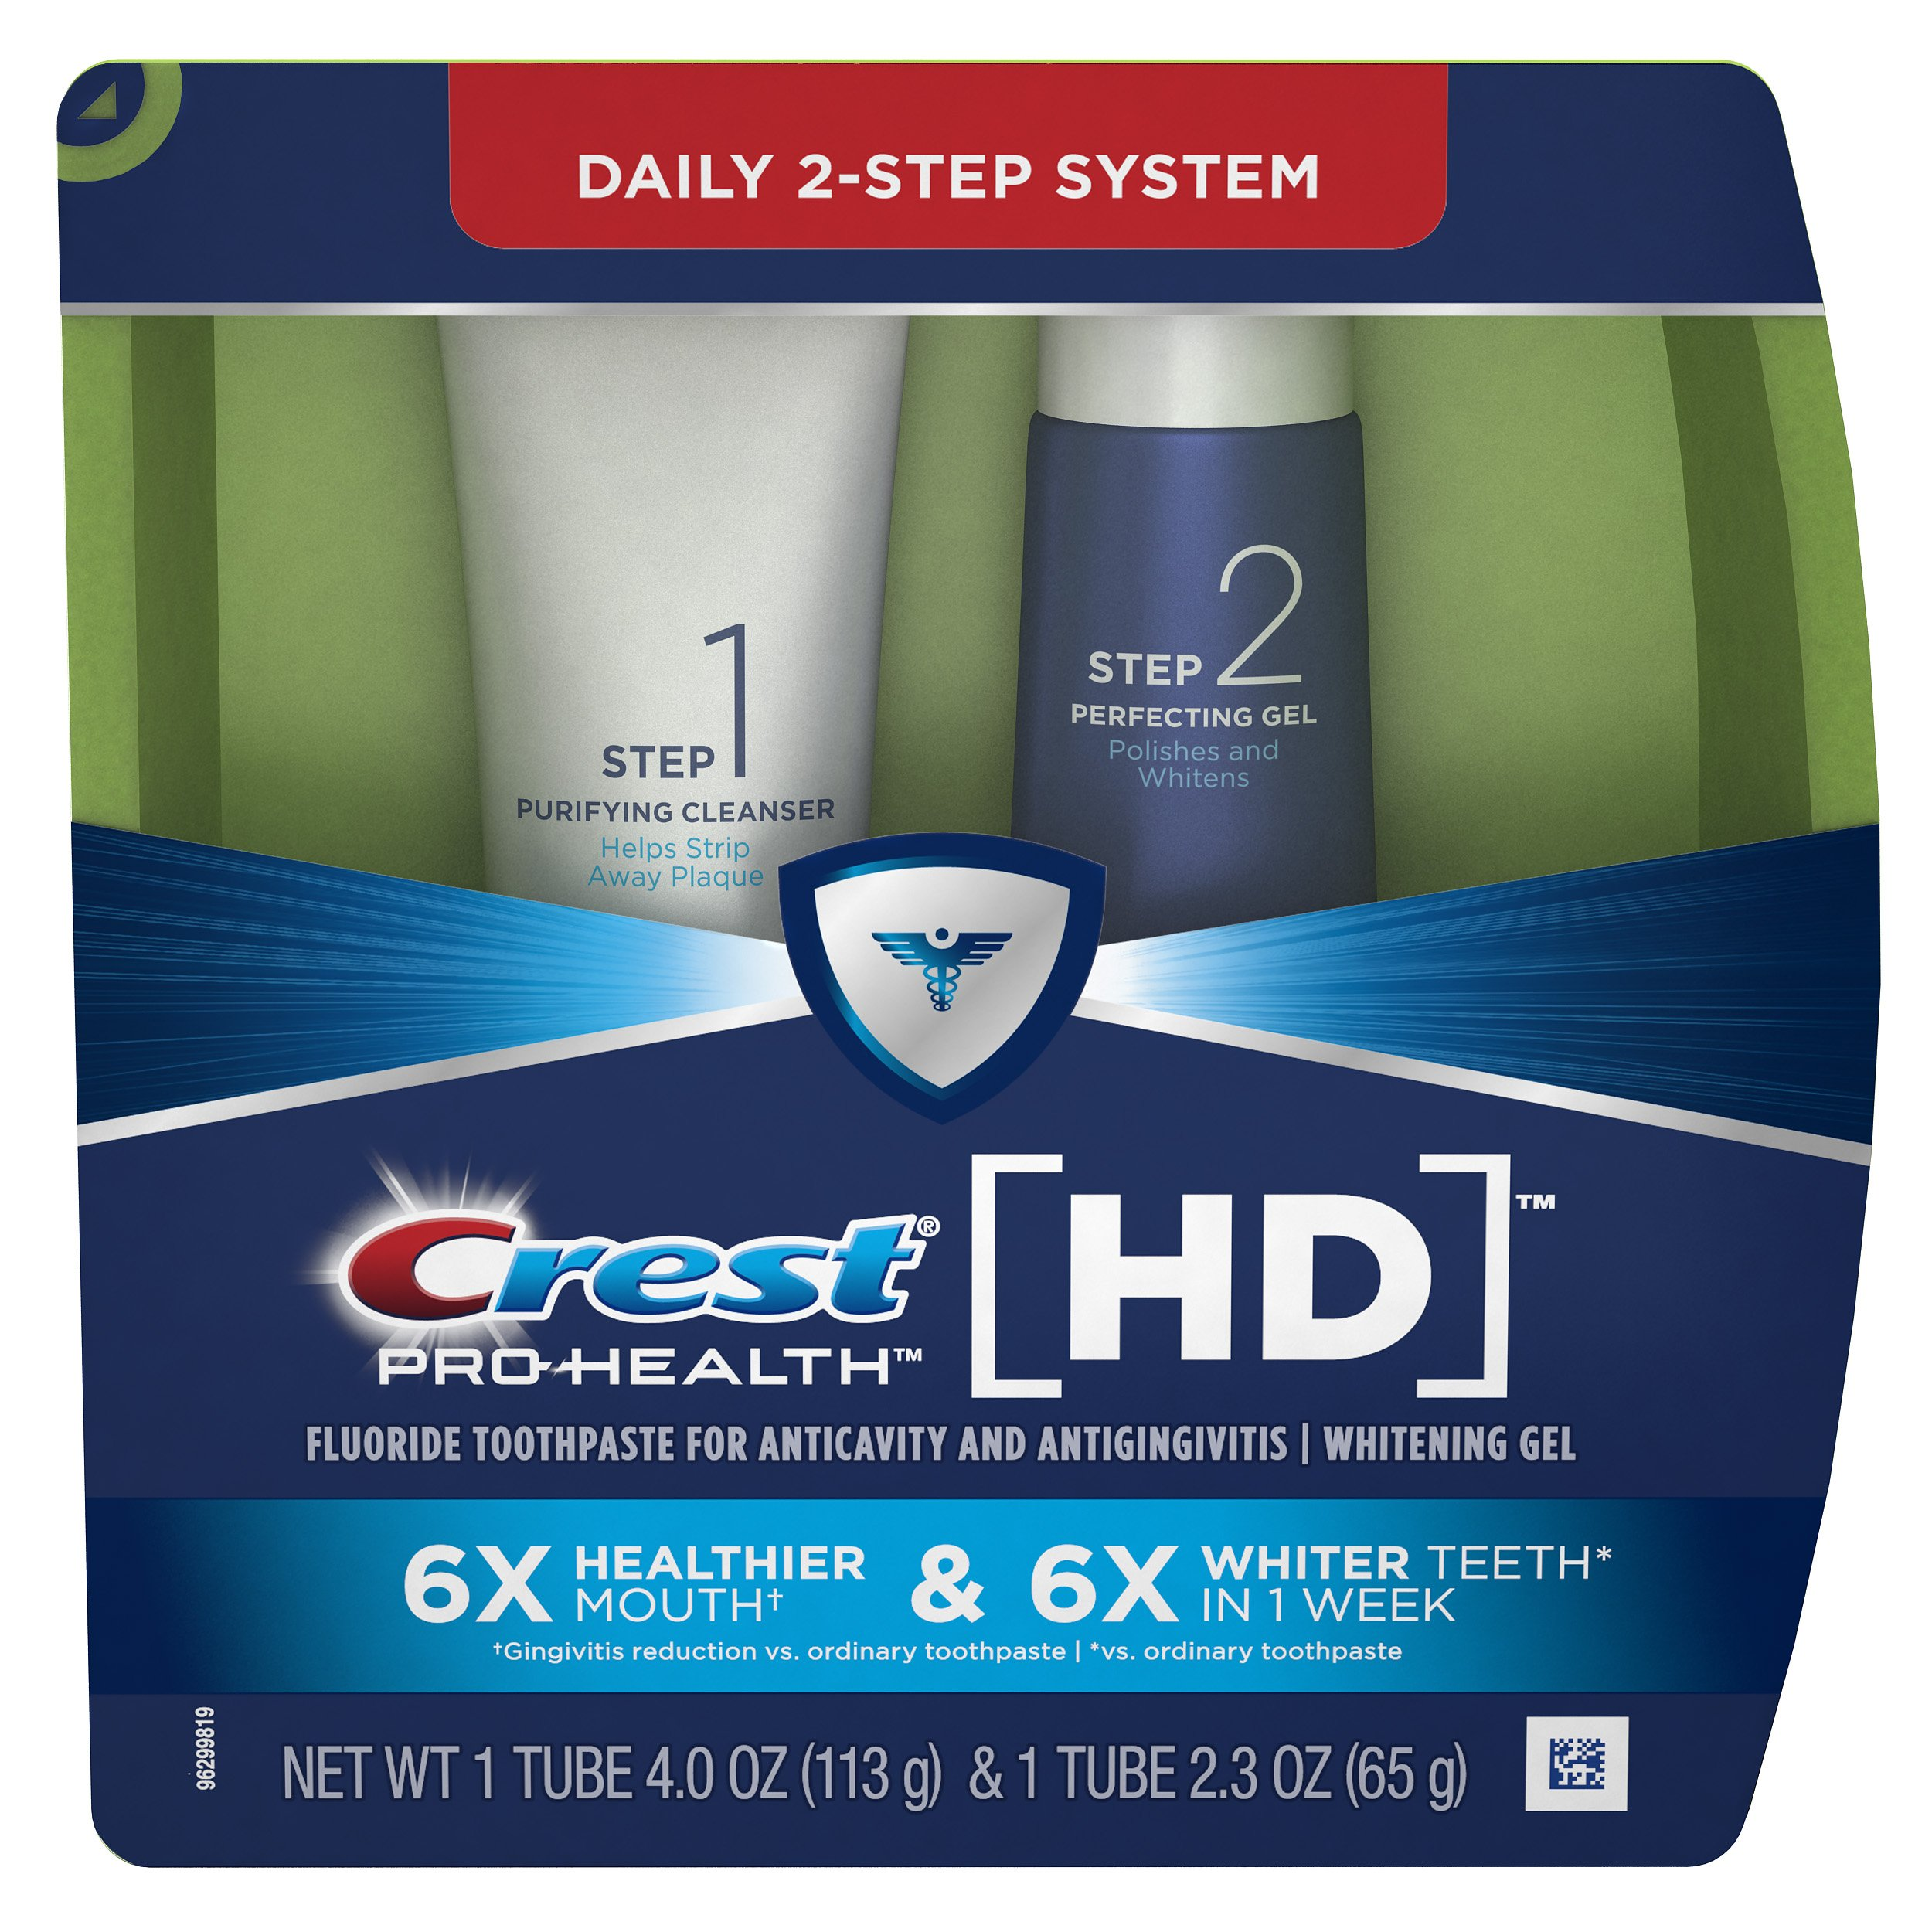 Crest Pro-Health HD Daily Two-Step Toothpaste System